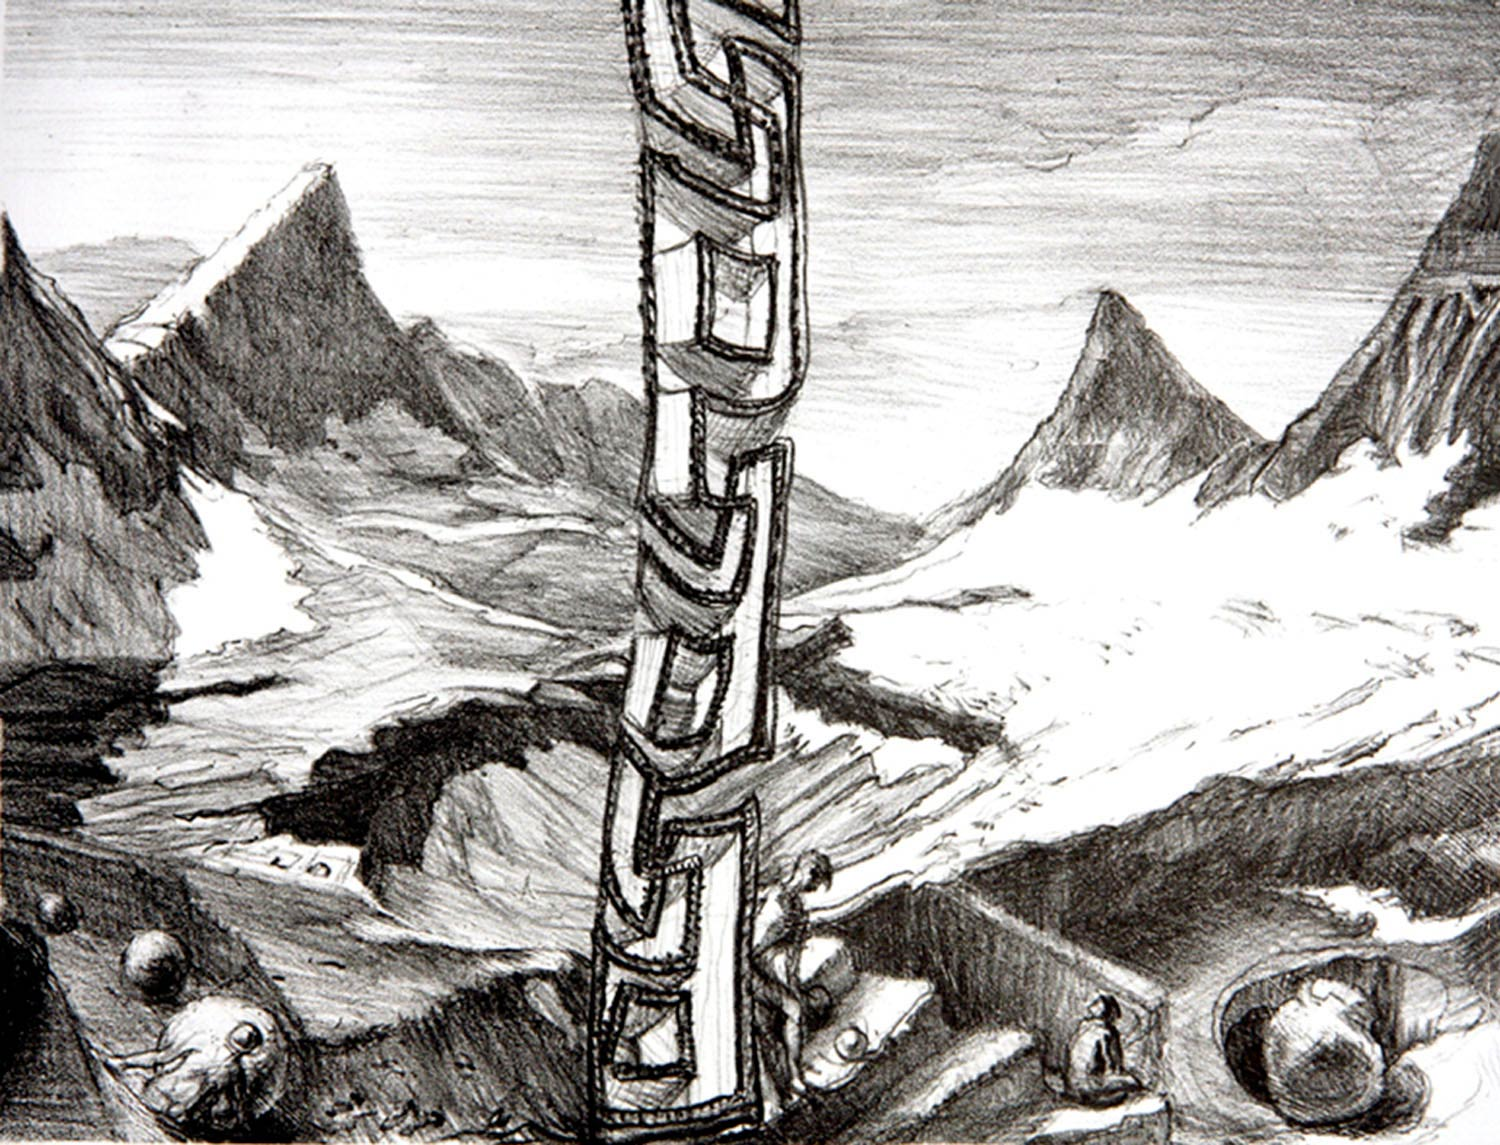 Glacier Loss litho 12 x 16 in 2010